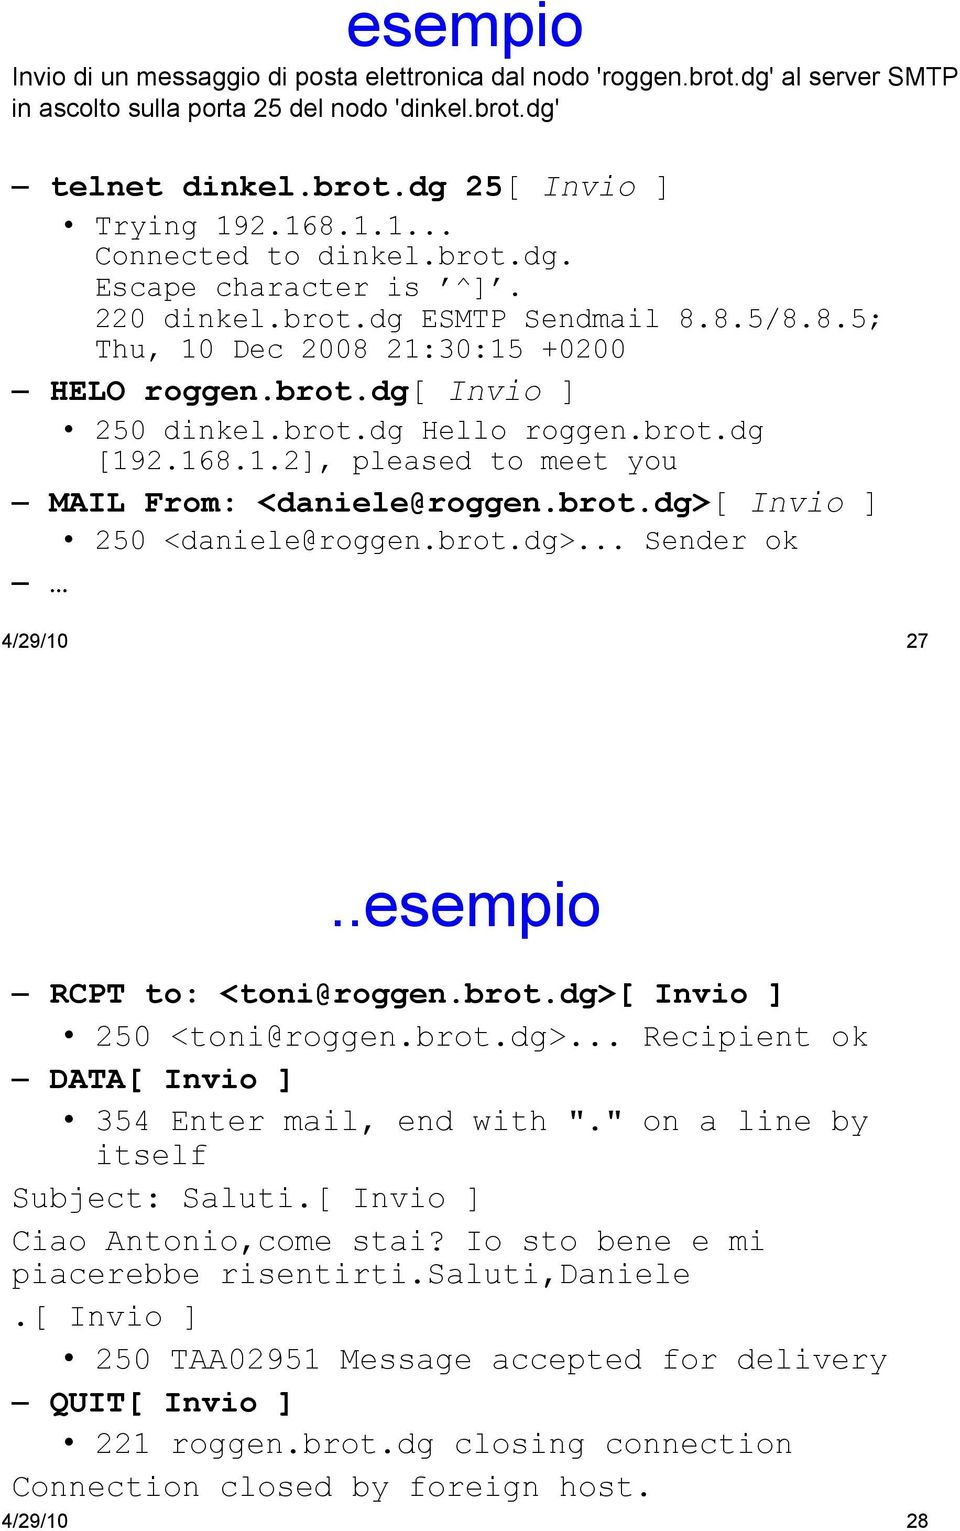 brot.dg [192.168.1.2], pleased to meet you MAIL From: <daniele@roggen.brot.dg>[ Invio ] 250 <daniele@roggen.brot.dg>... Sender ok 4/29/10 27..esempio RCPT to: <toni@roggen.brot.dg>[ Invio ] 250 <toni@roggen.